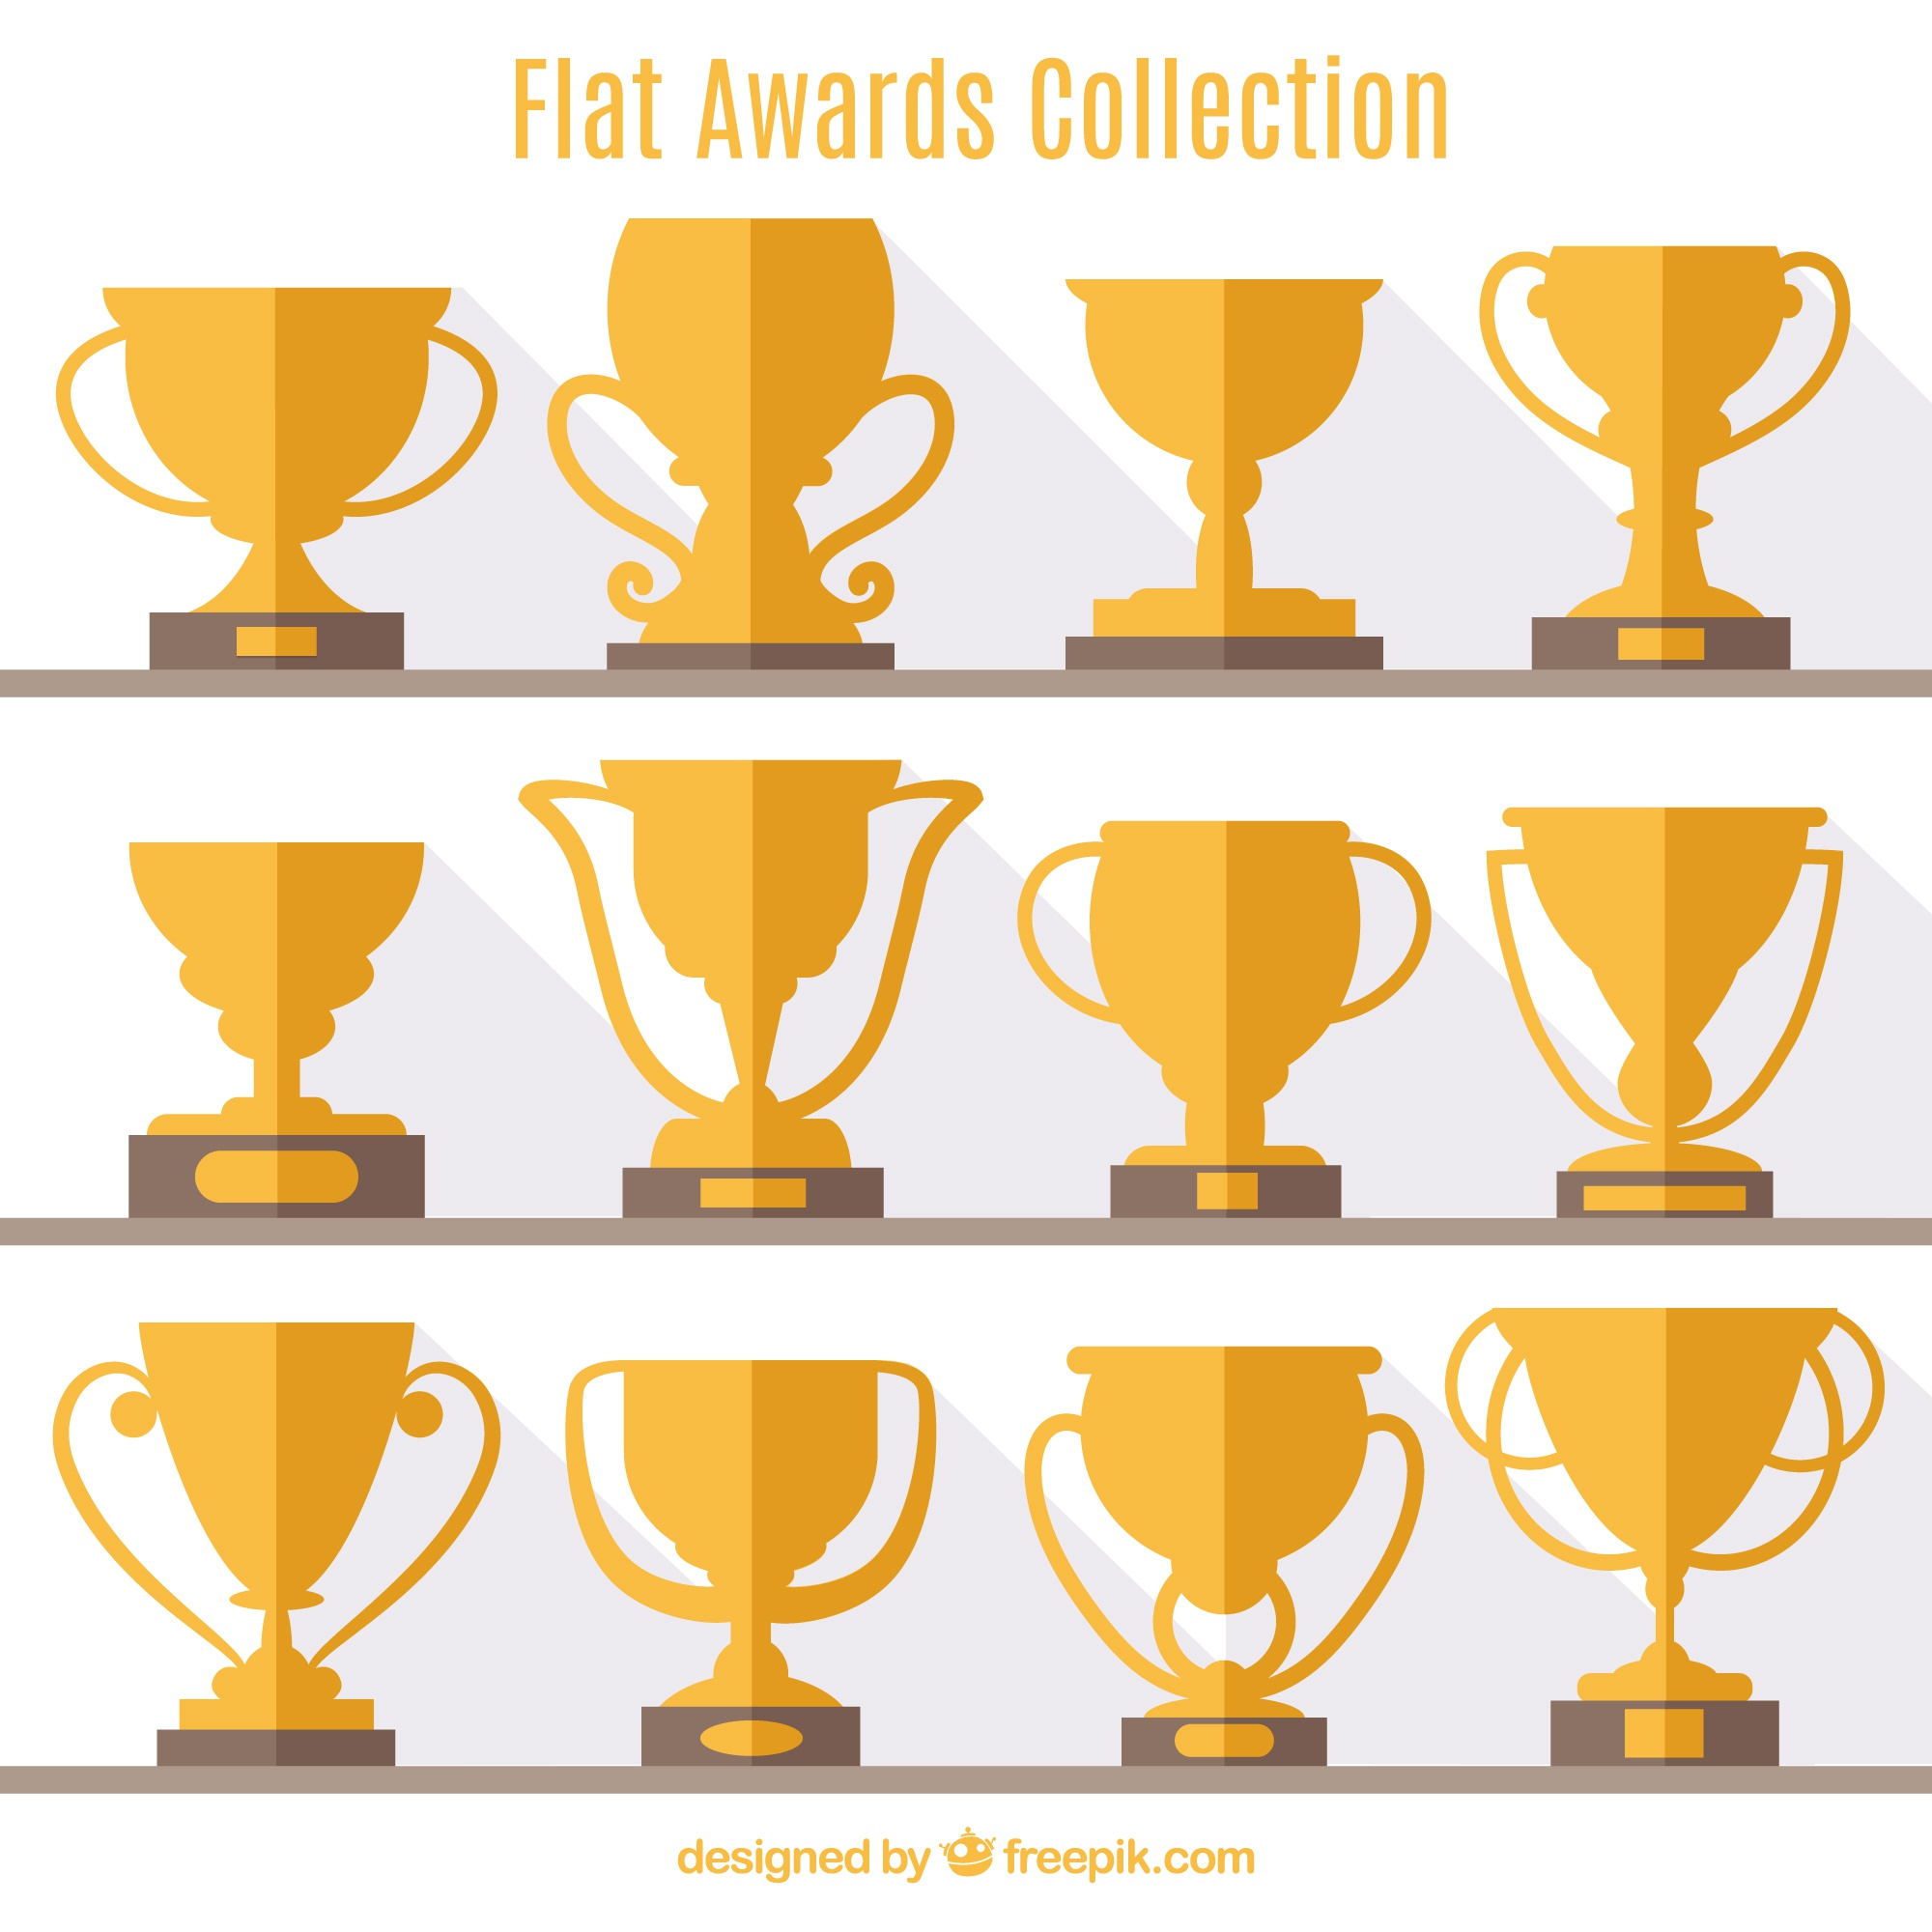 Flat Award Collection